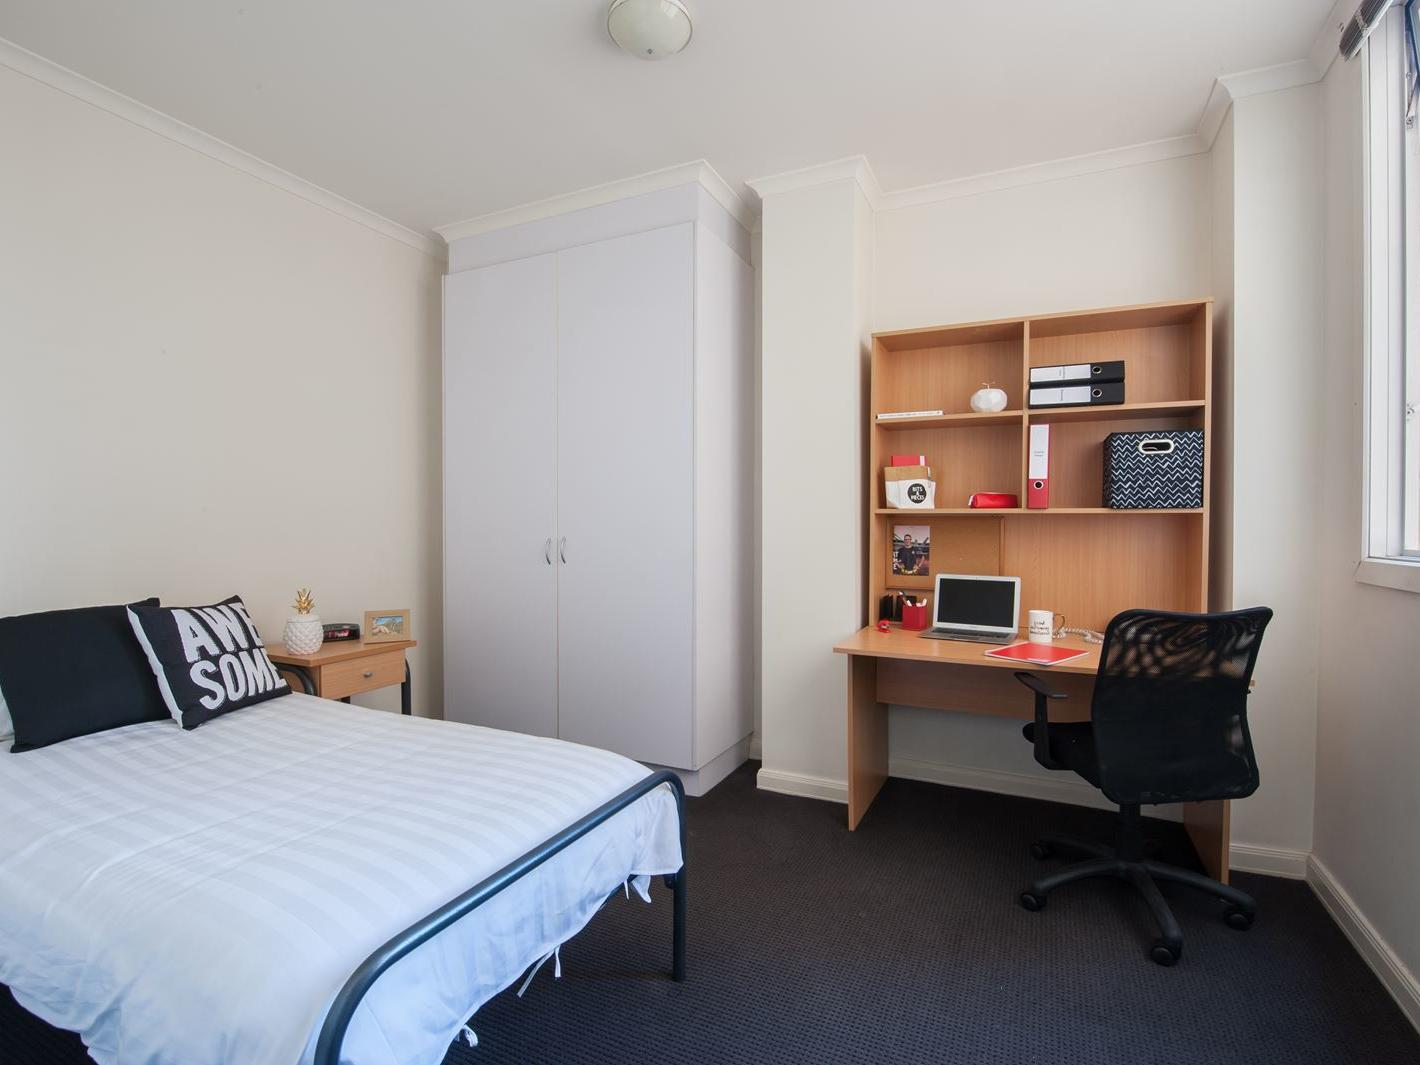 1 bedroom apartment at UniLodge on Flinders